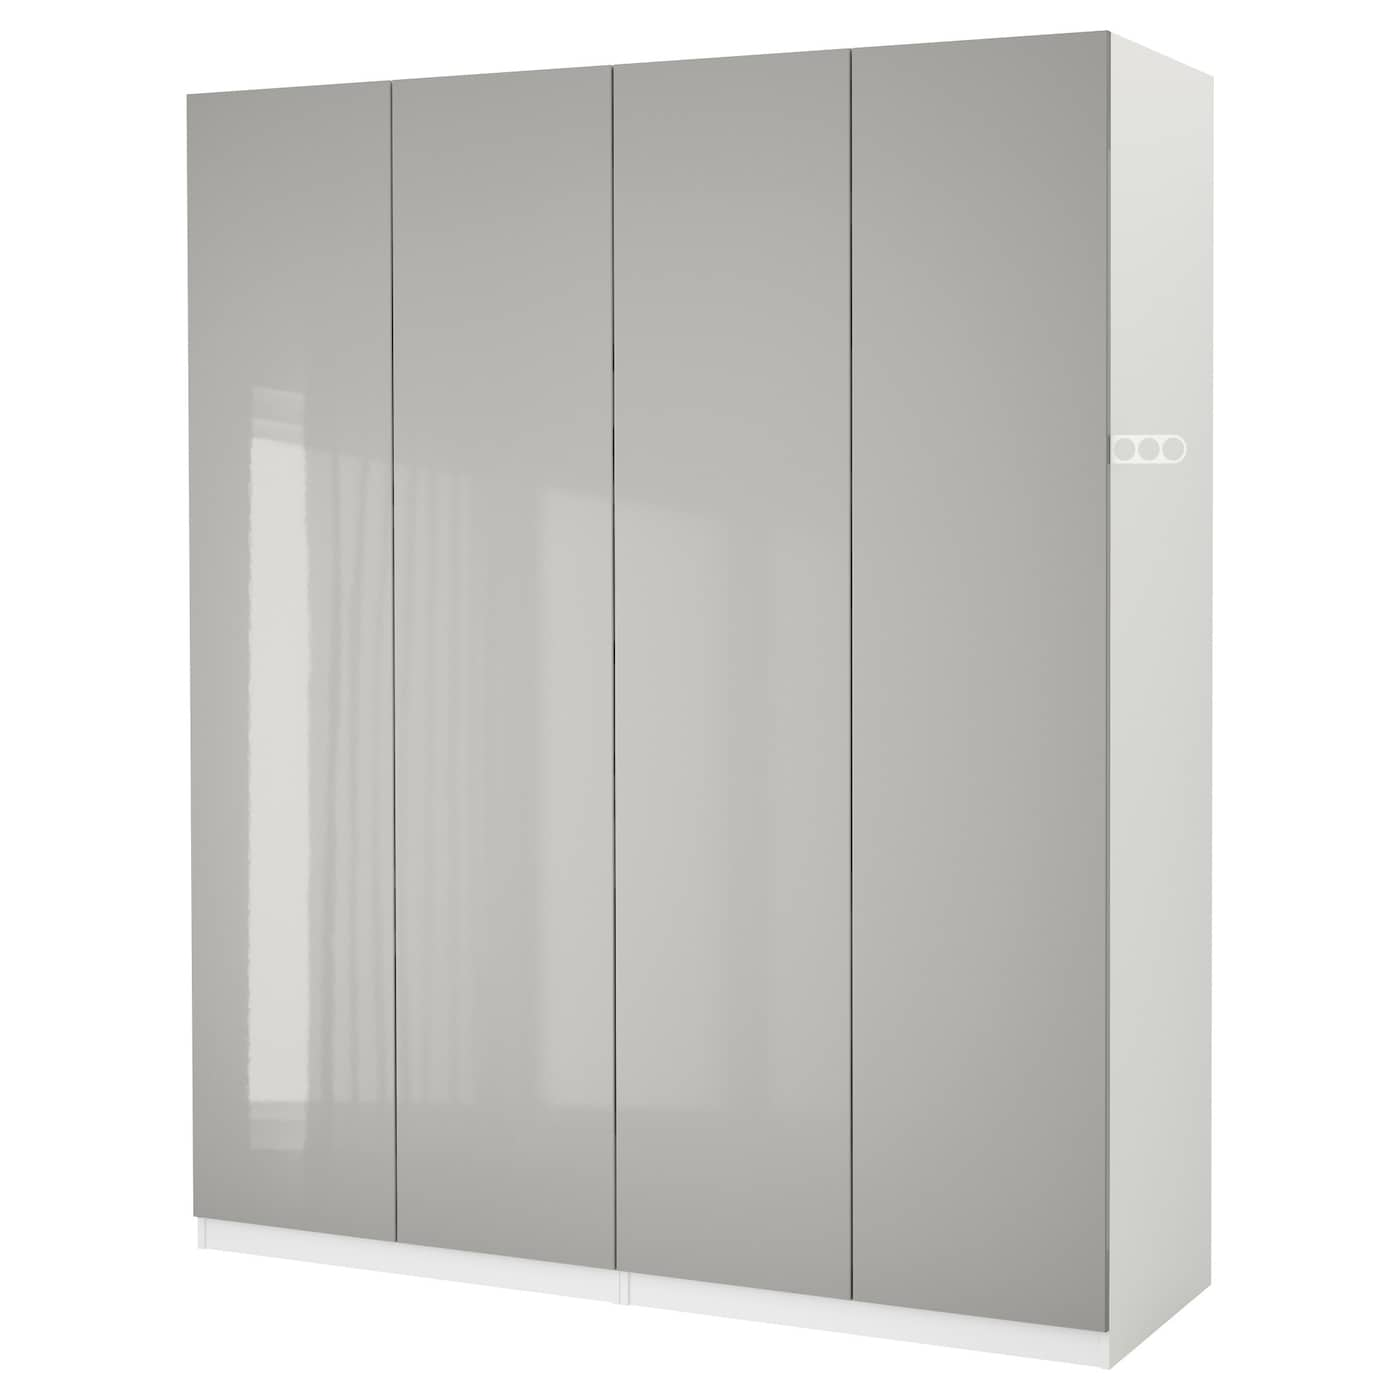 pax armoire penderie blanc fardal gris clair brillant 200x60x236 cm ikea. Black Bedroom Furniture Sets. Home Design Ideas